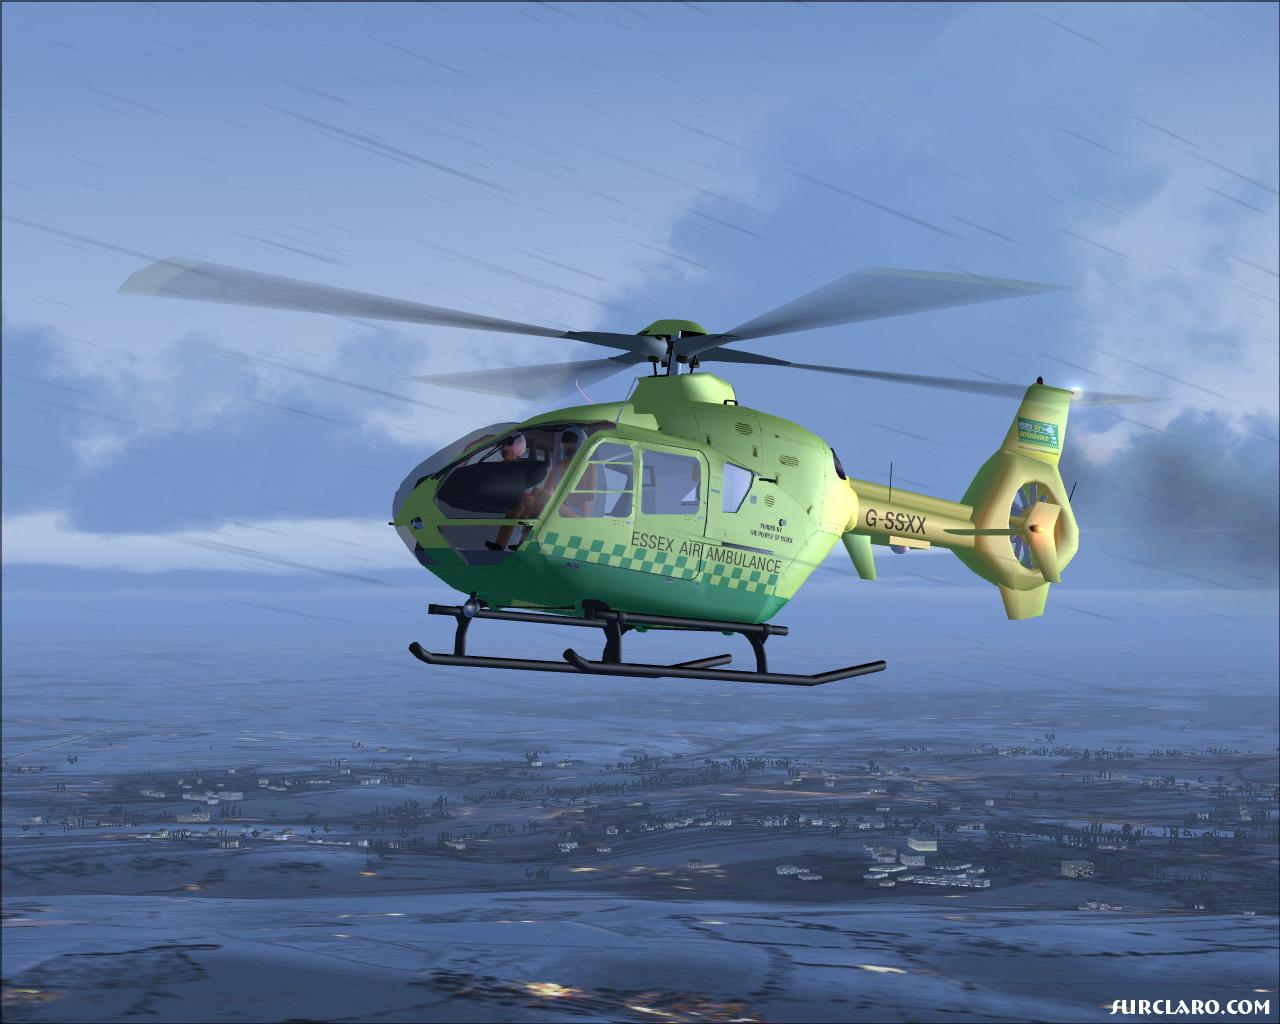 This is a Eurocopter EC 135 T1 (Essex Air Ambulance) being tested on my new gfx card(NVIDIA GeForce 7800GT). - Photo 13692